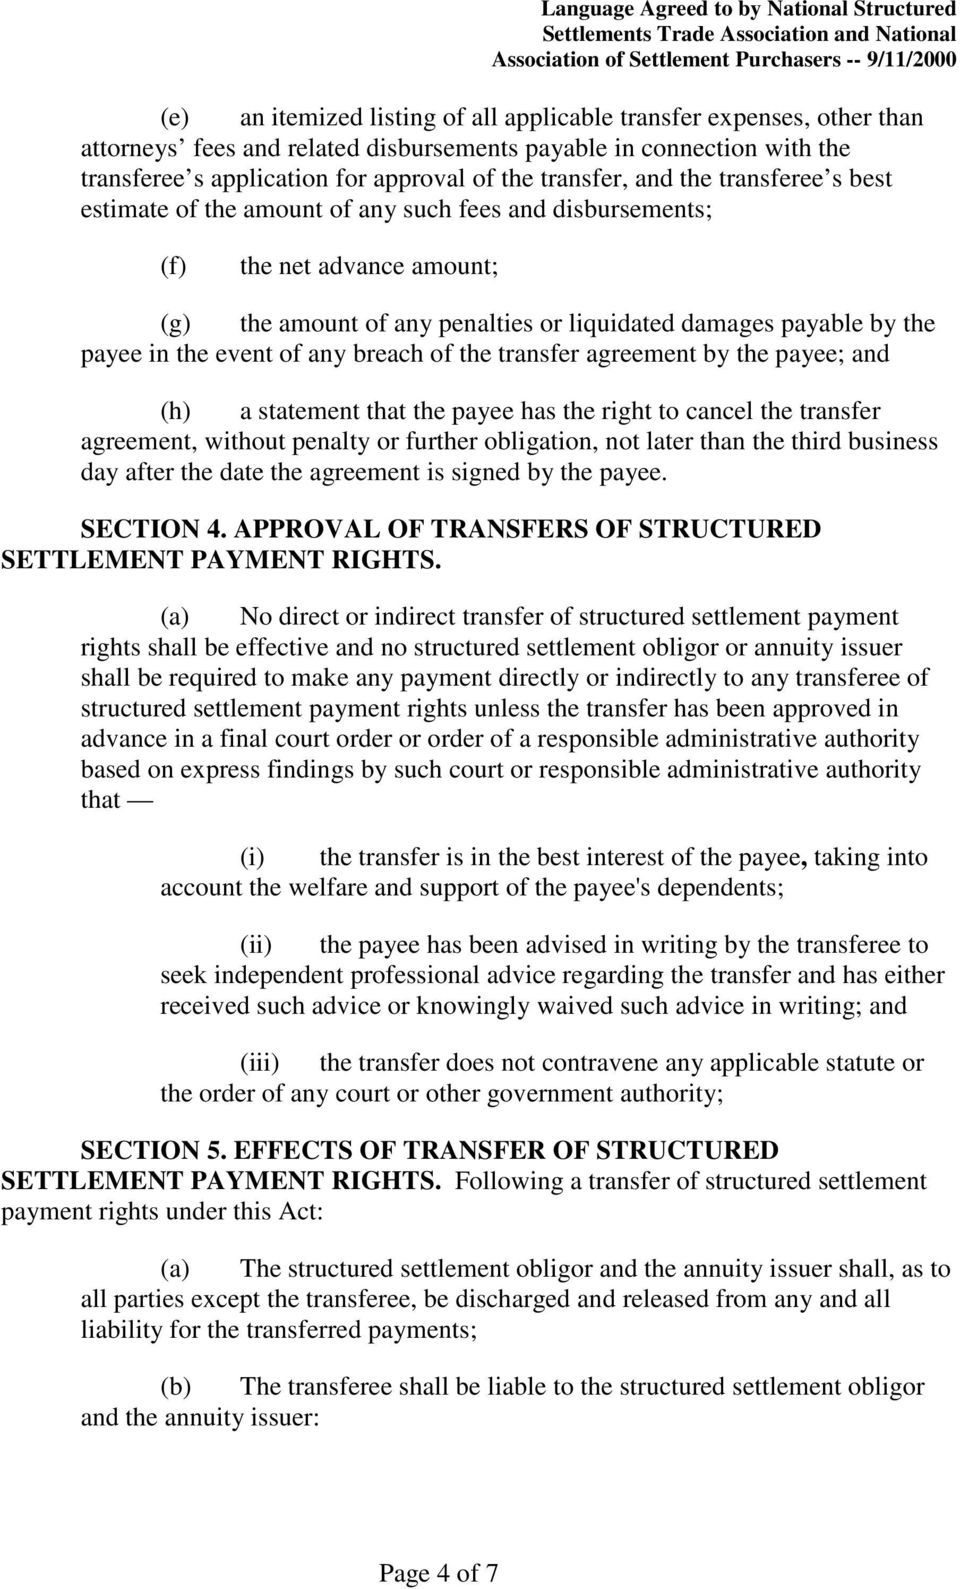 event of any breach of the transfer agreement by the payee; and (h) a statement that the payee has the right to cancel the transfer agreement, without penalty or further obligation, not later than